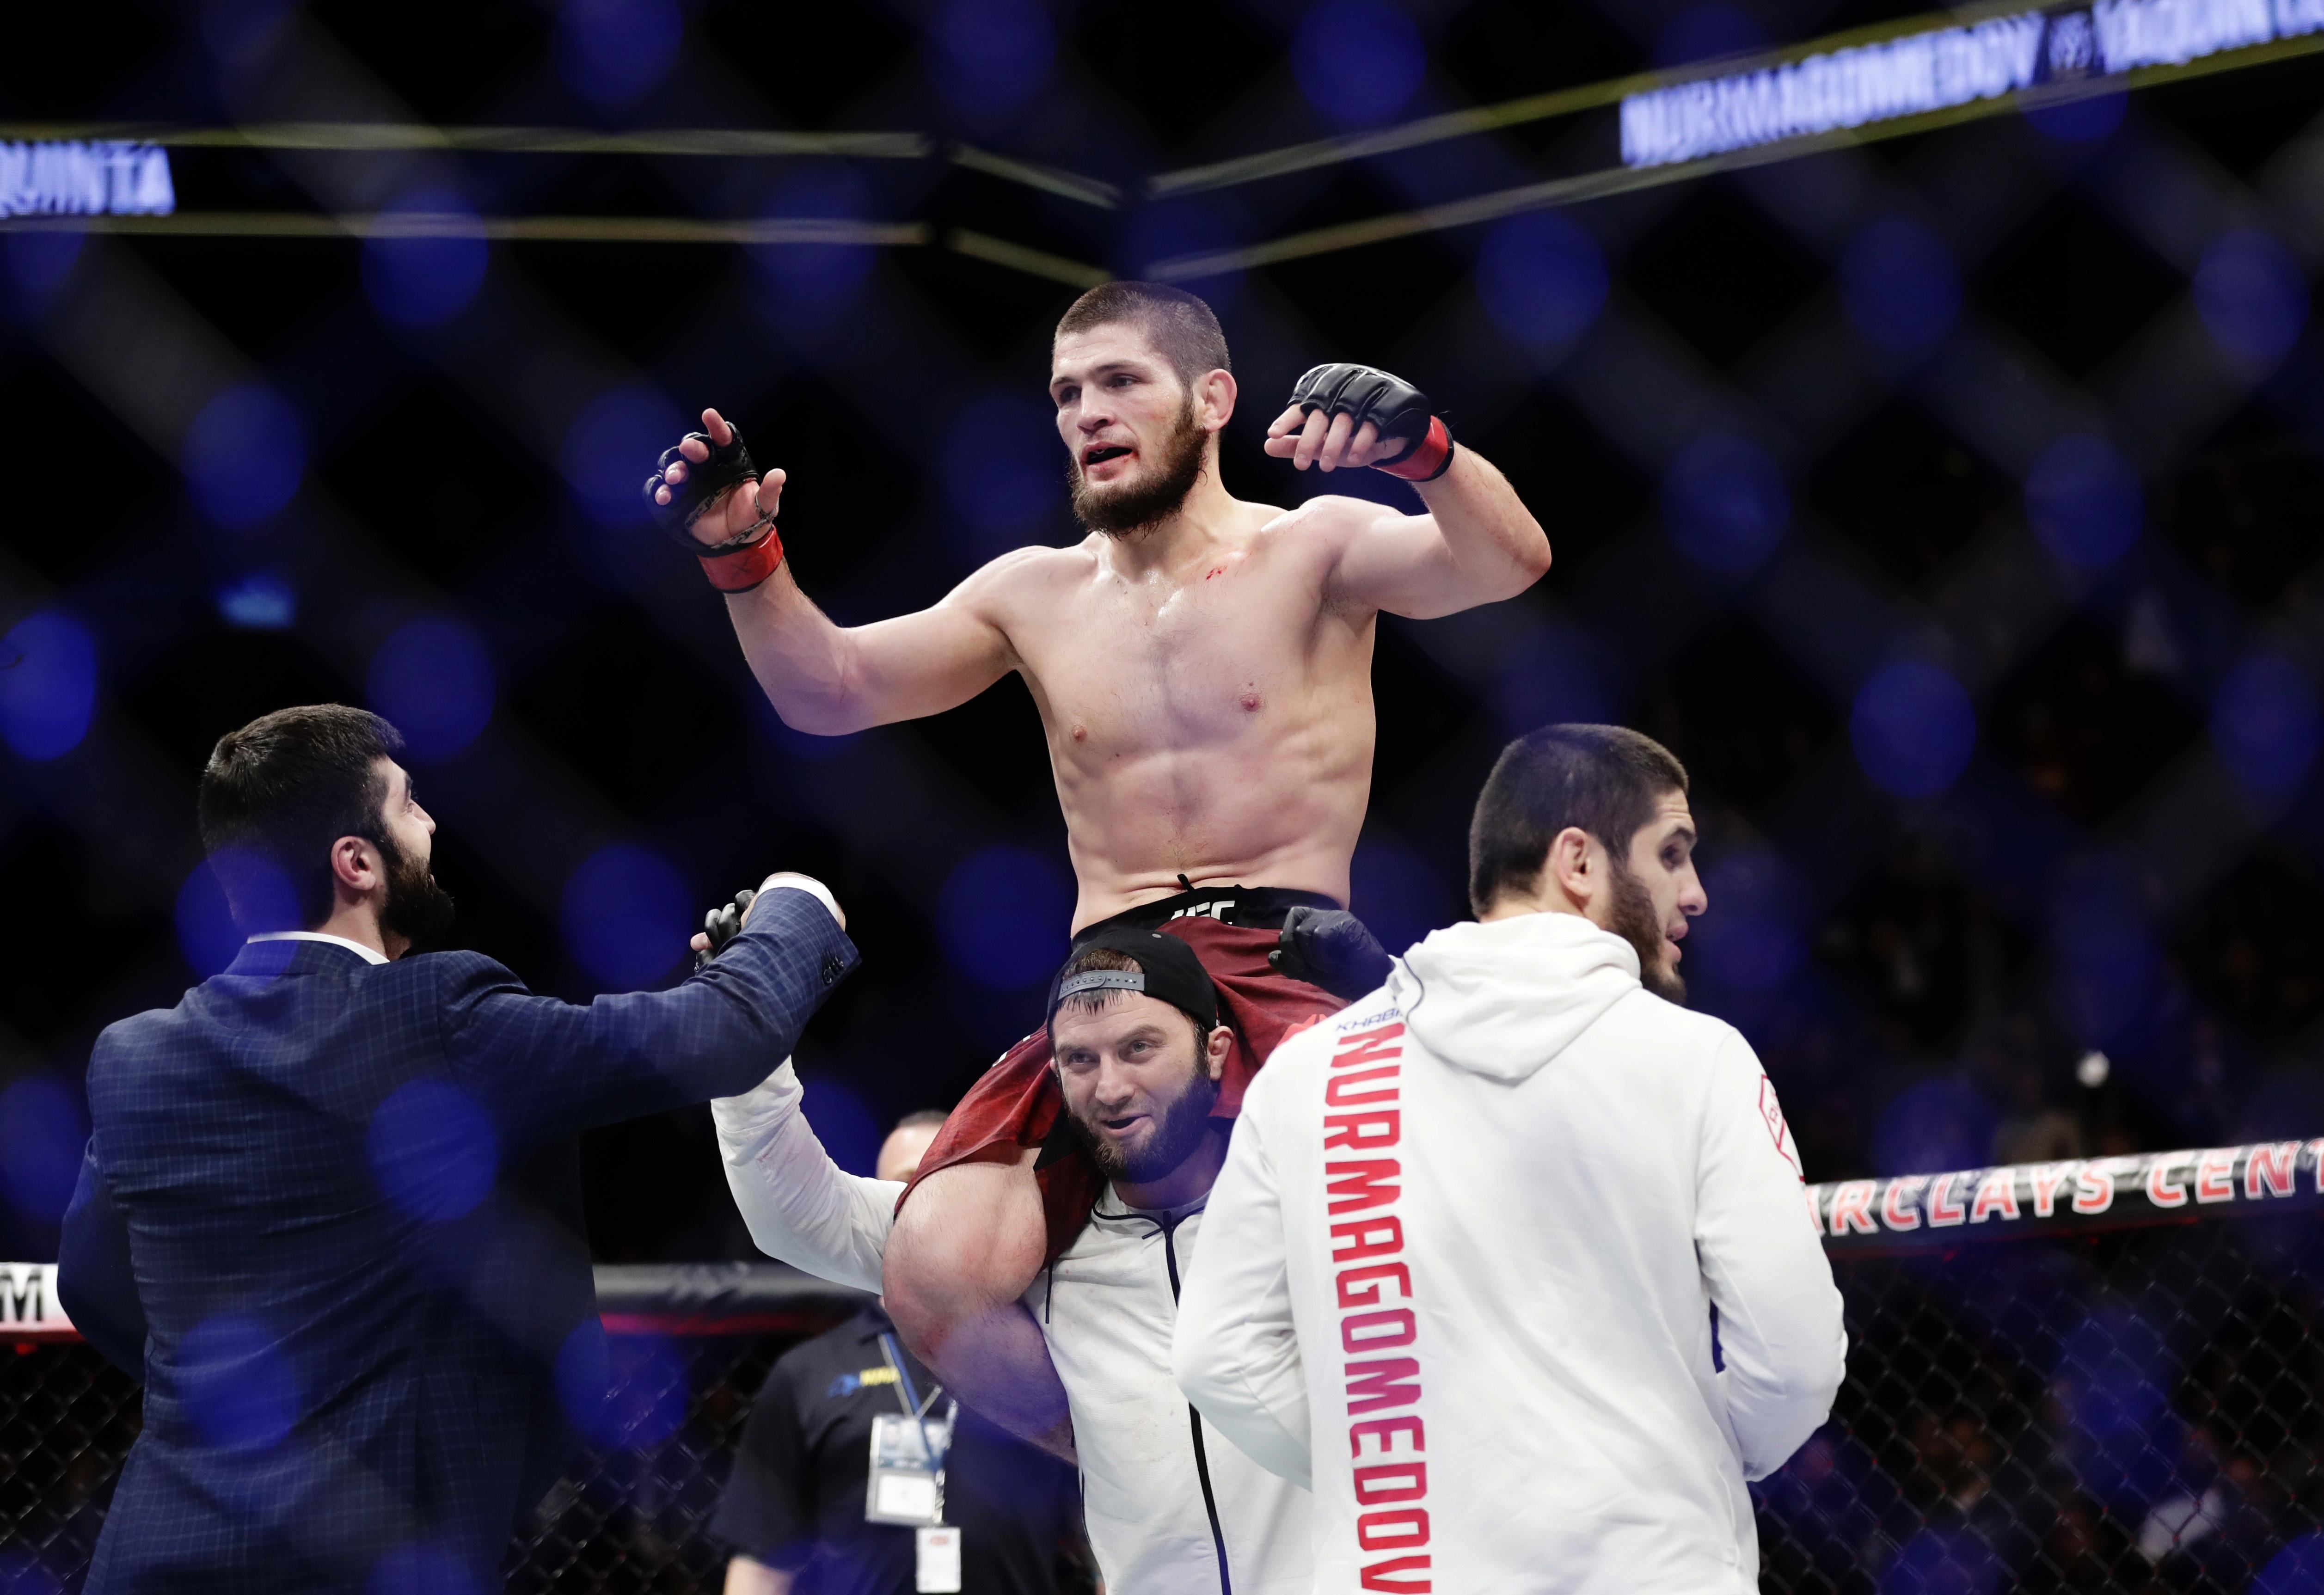 Khabib Nurmagomedov is trying not to get involved in the war of words